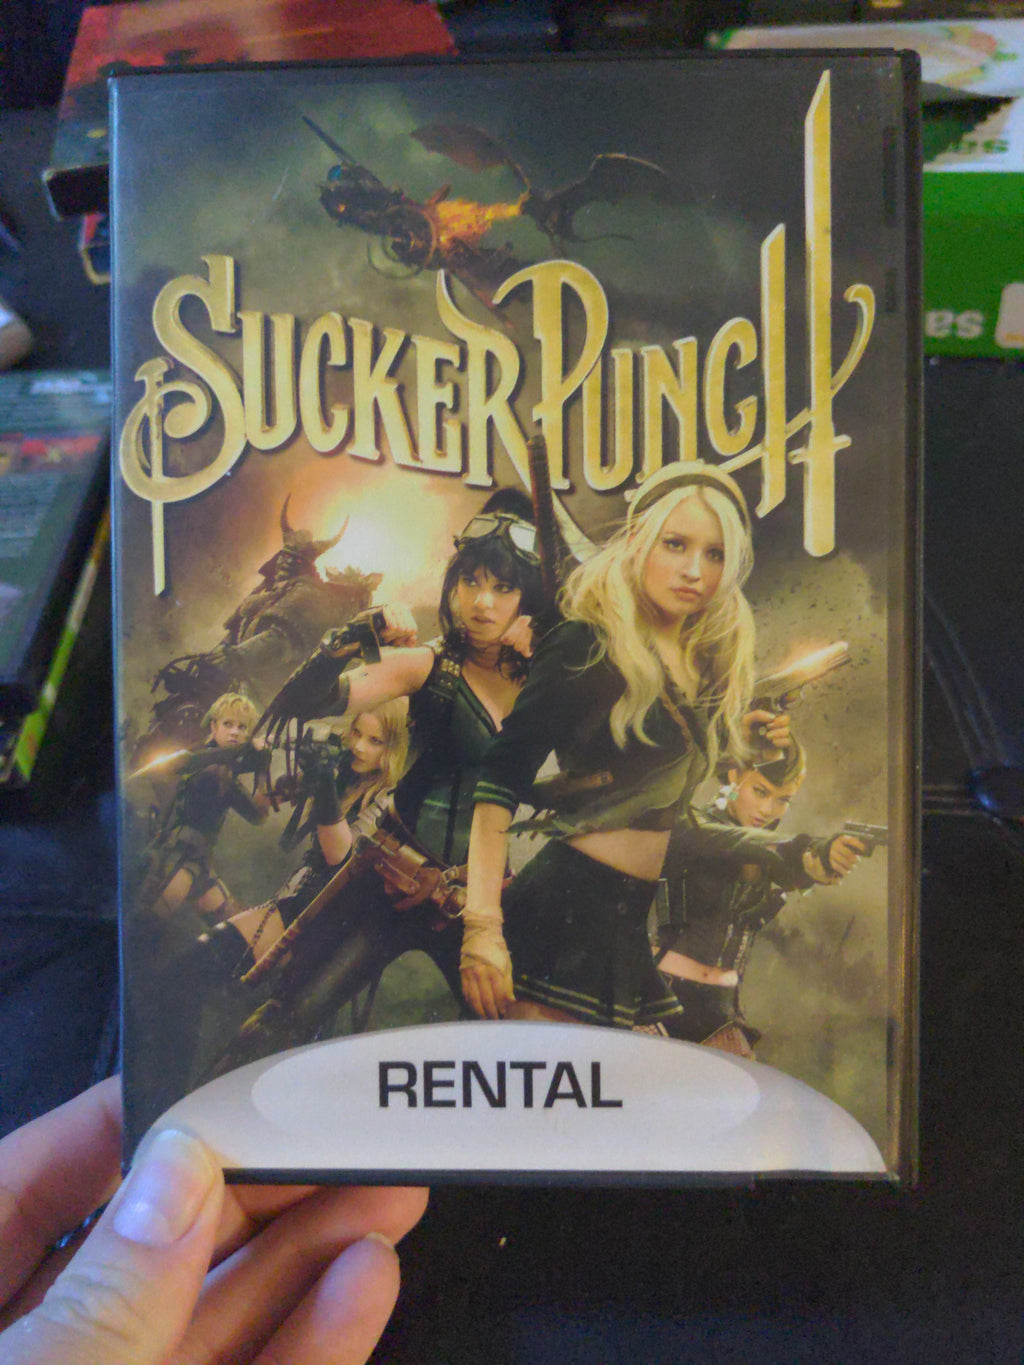 Sucker Punch Marked RENTAL on Case and DVD Blockbuster Video